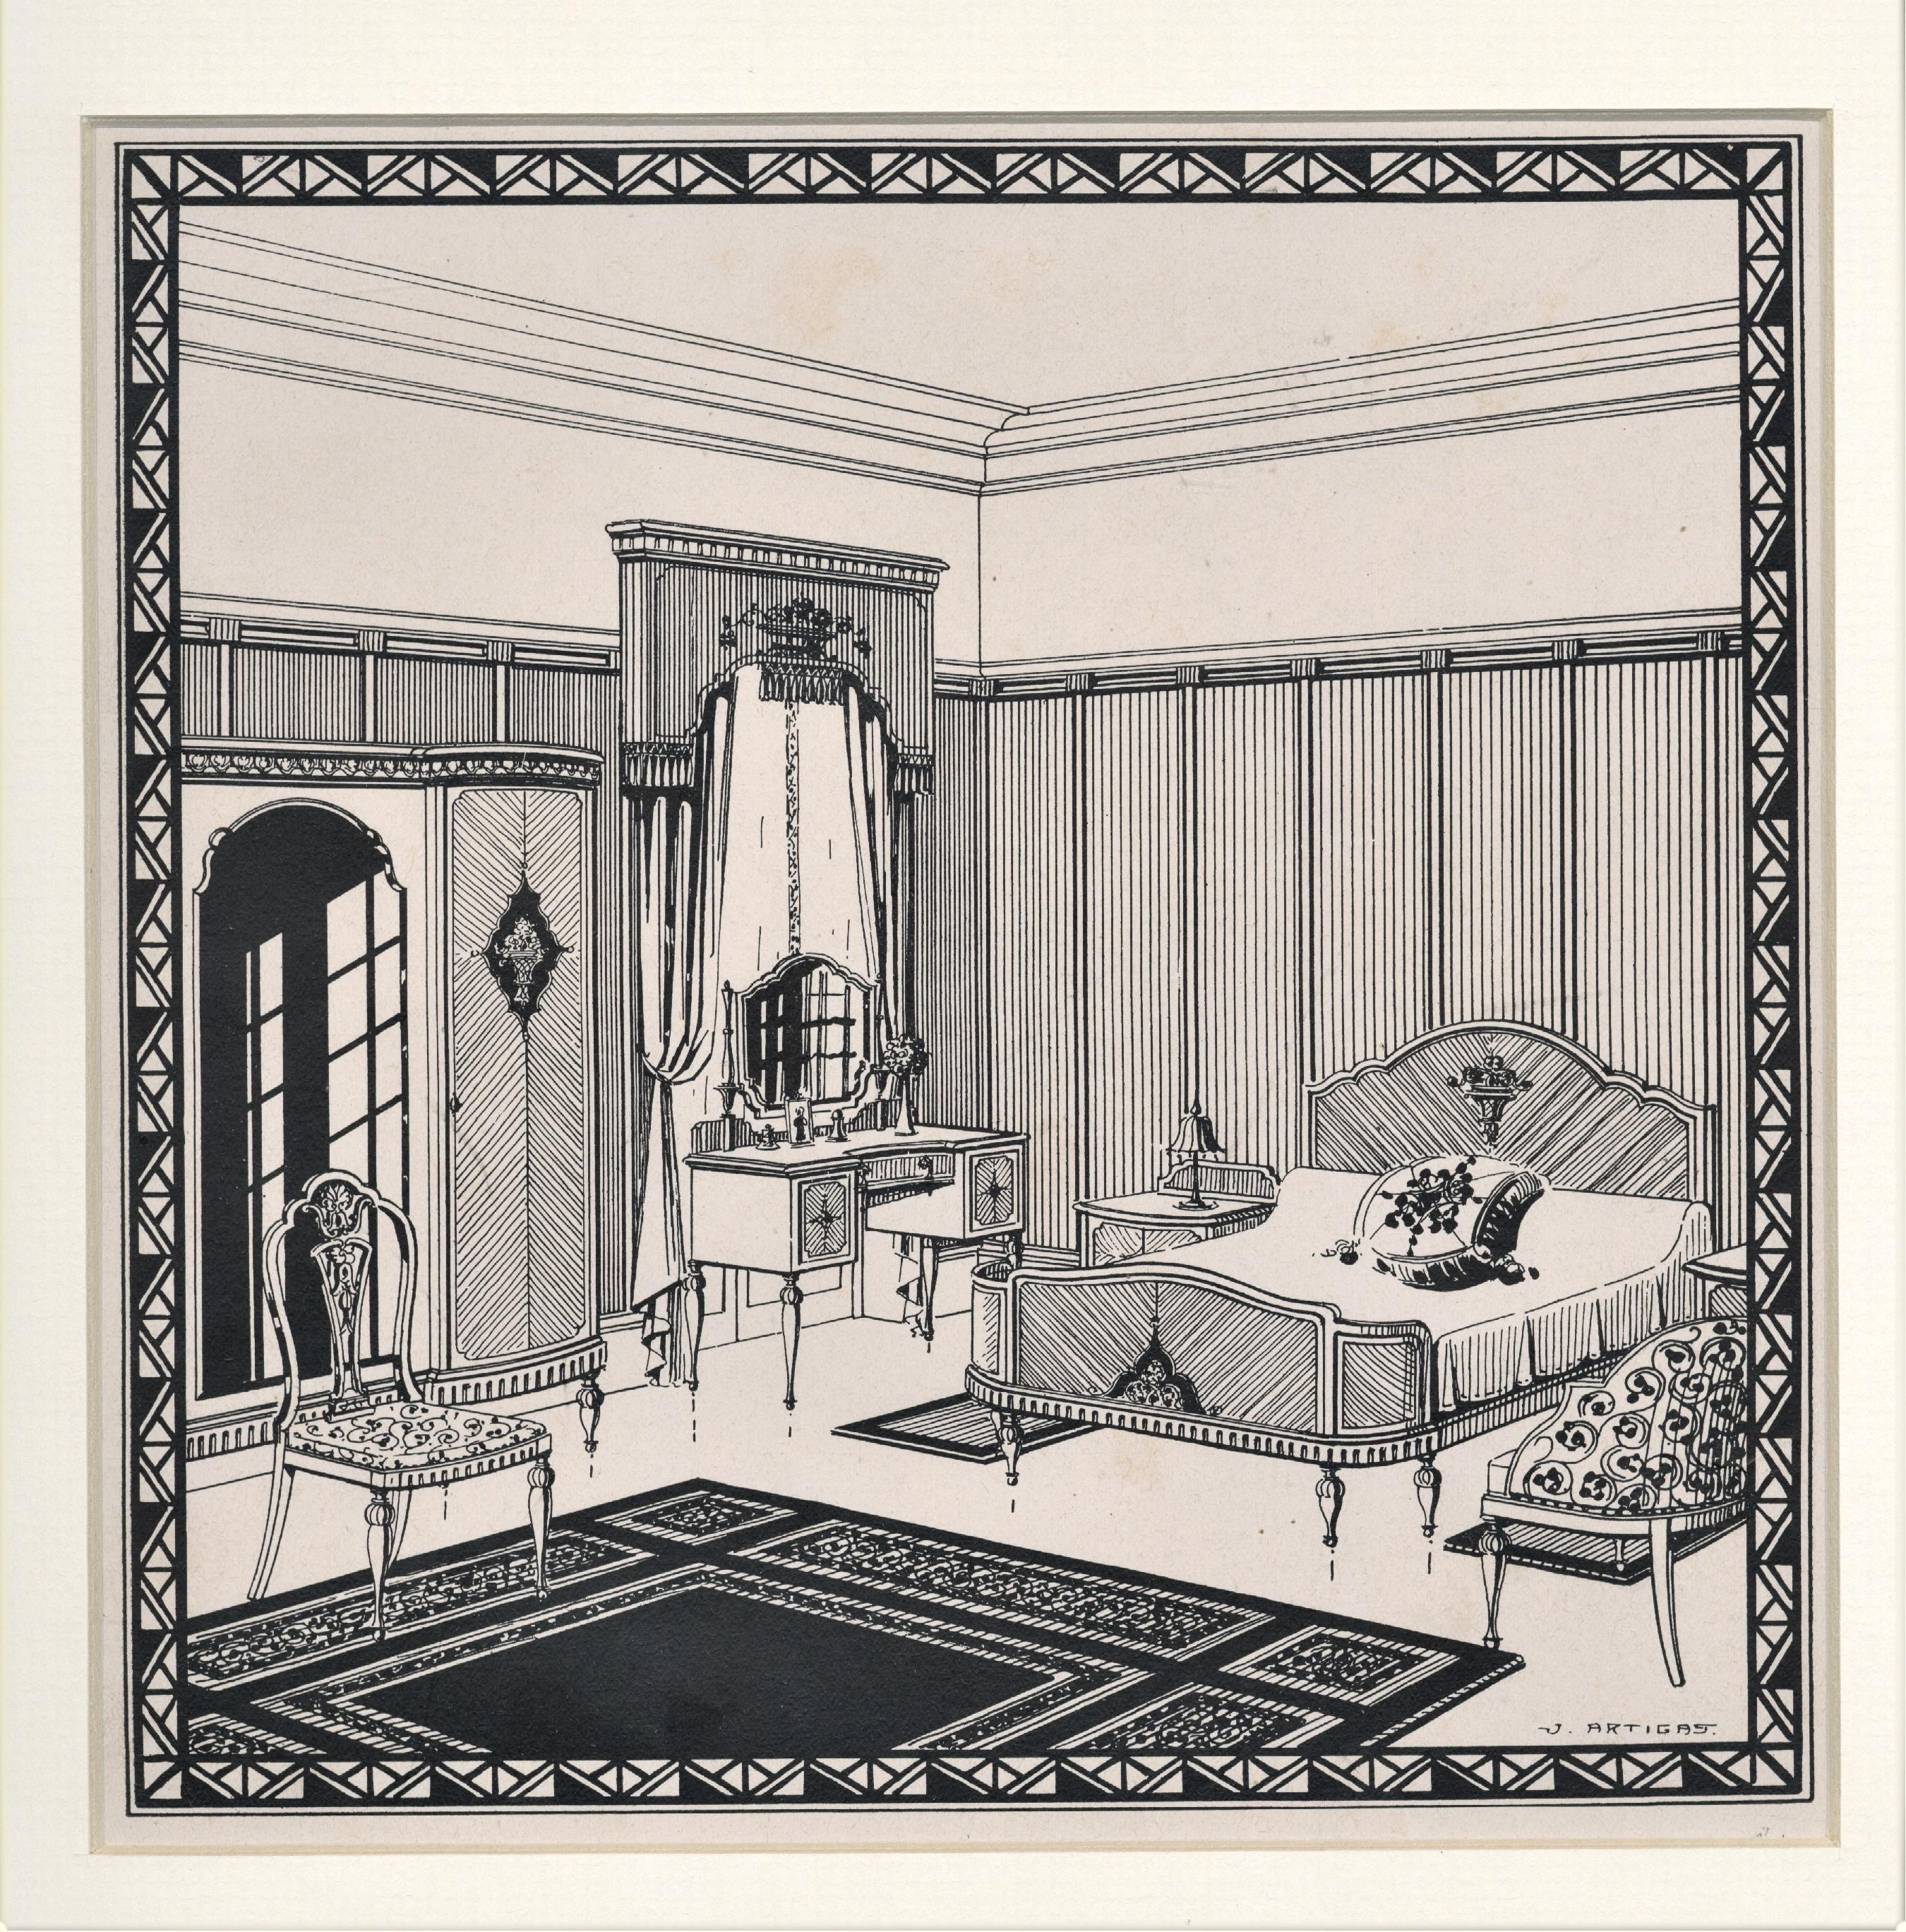 1920 S Matted Art Deco Architectural Interior Design Lithograph